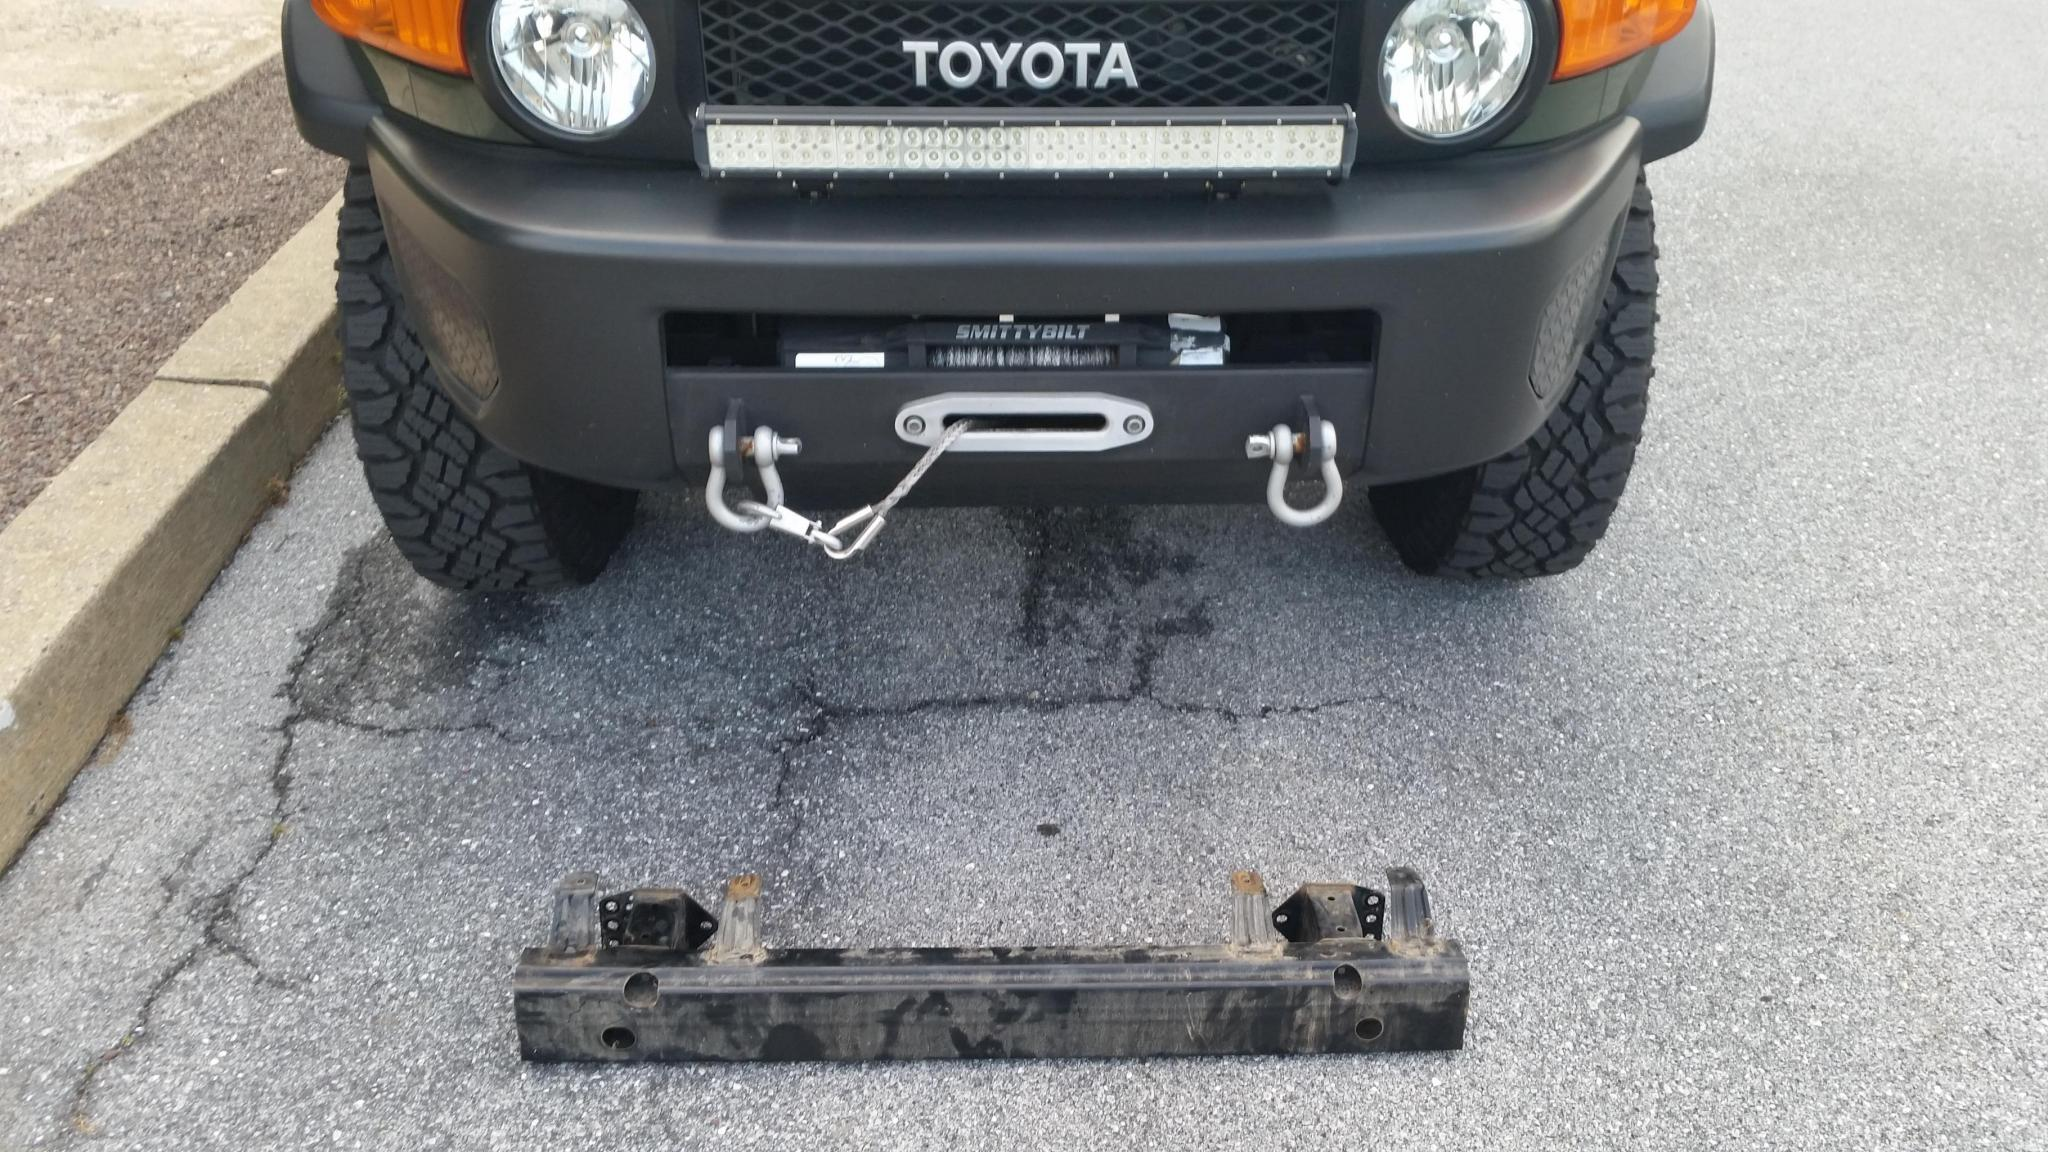 Fj Oem Metal Front Bumper Toyota Fj Cruiser Forum Make Your Own Beautiful  HD Wallpapers, Images Over 1000+ [ralydesign.ml]